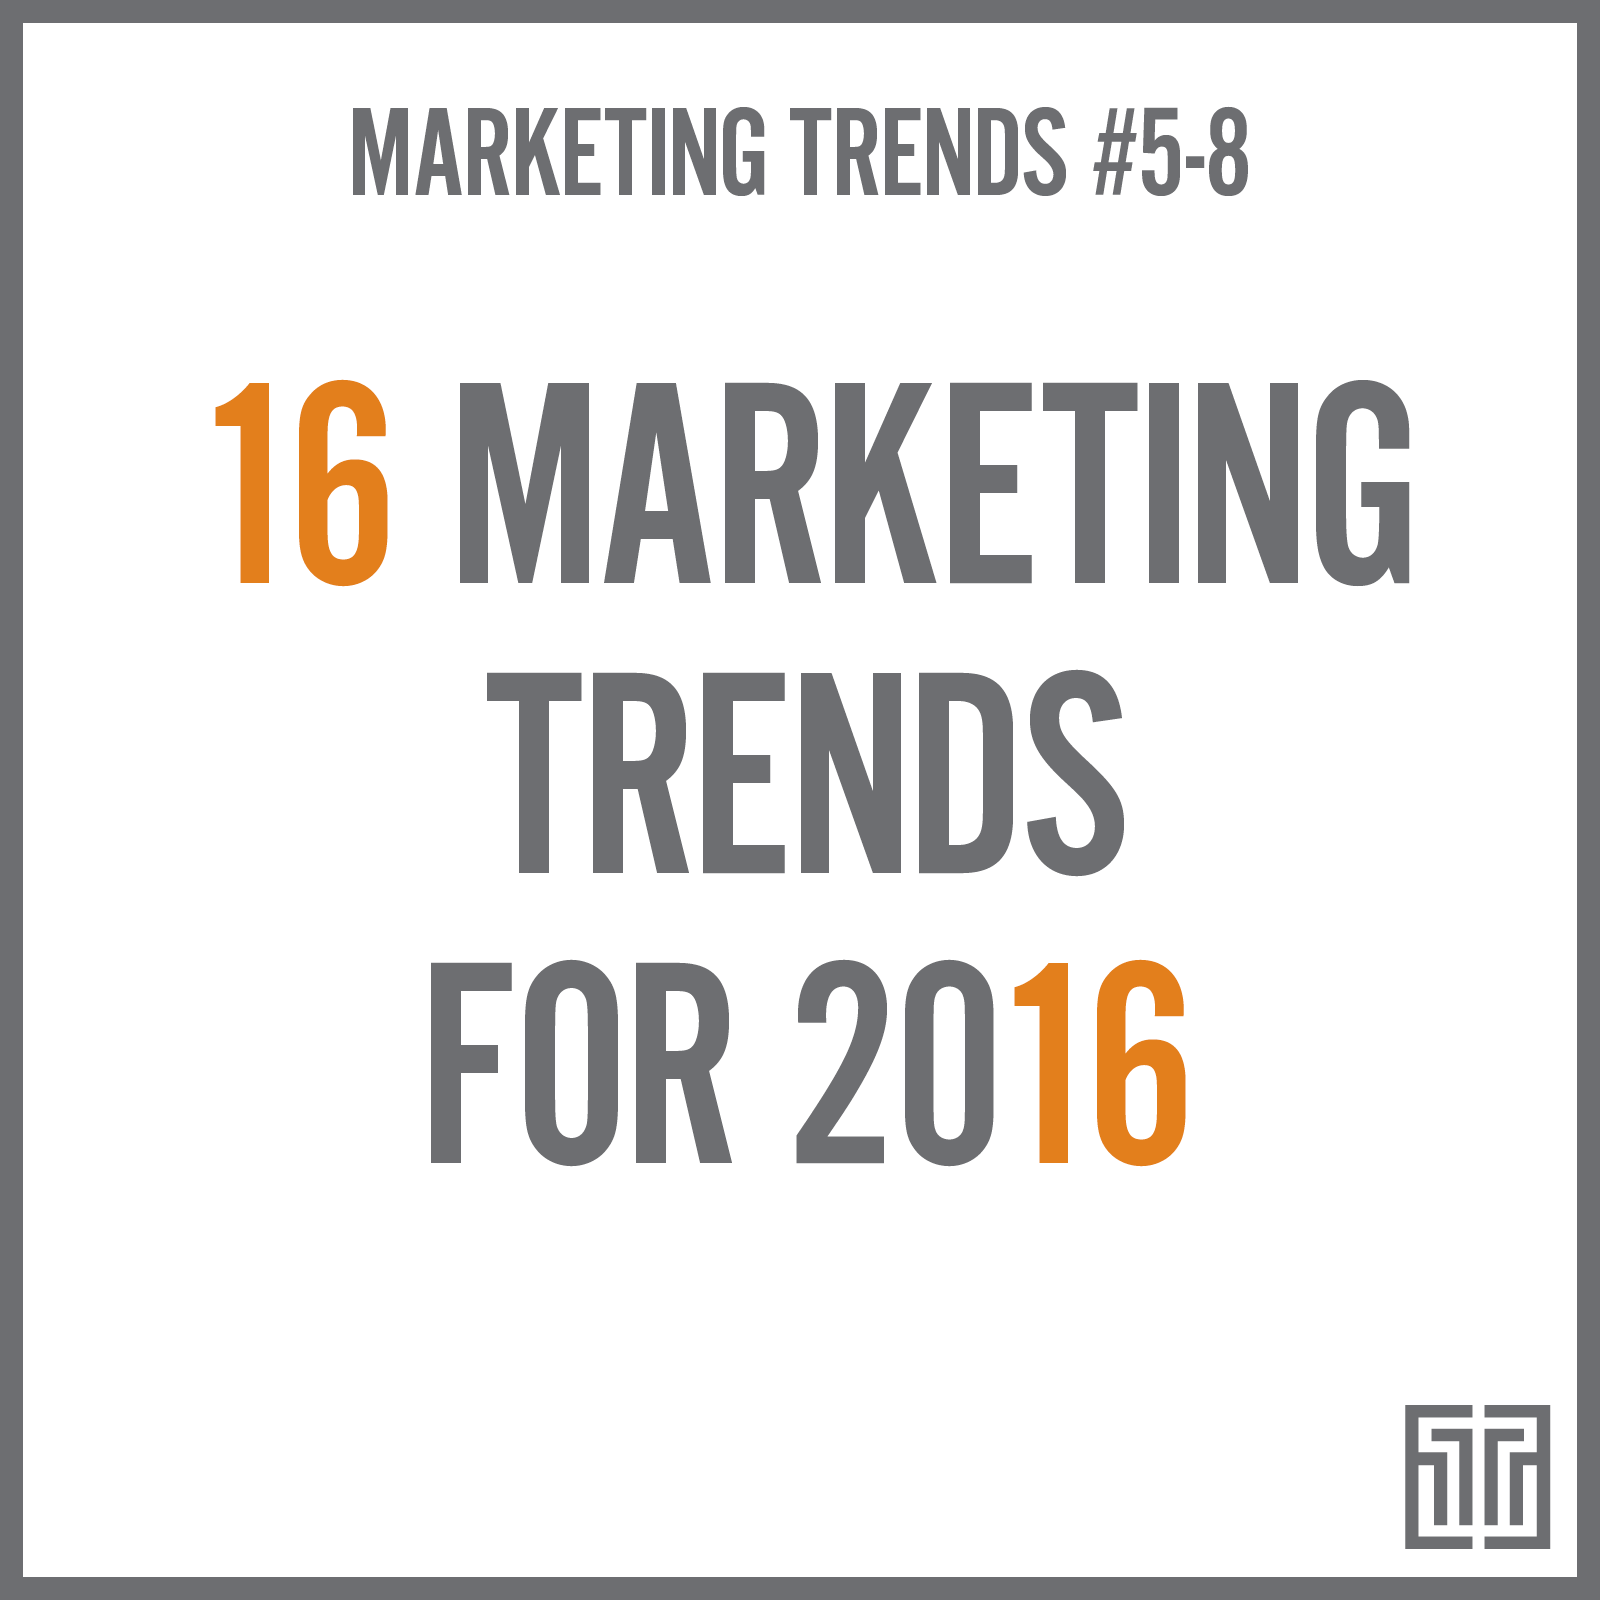 16 Marketing Trends for 2016: Trends 5-8